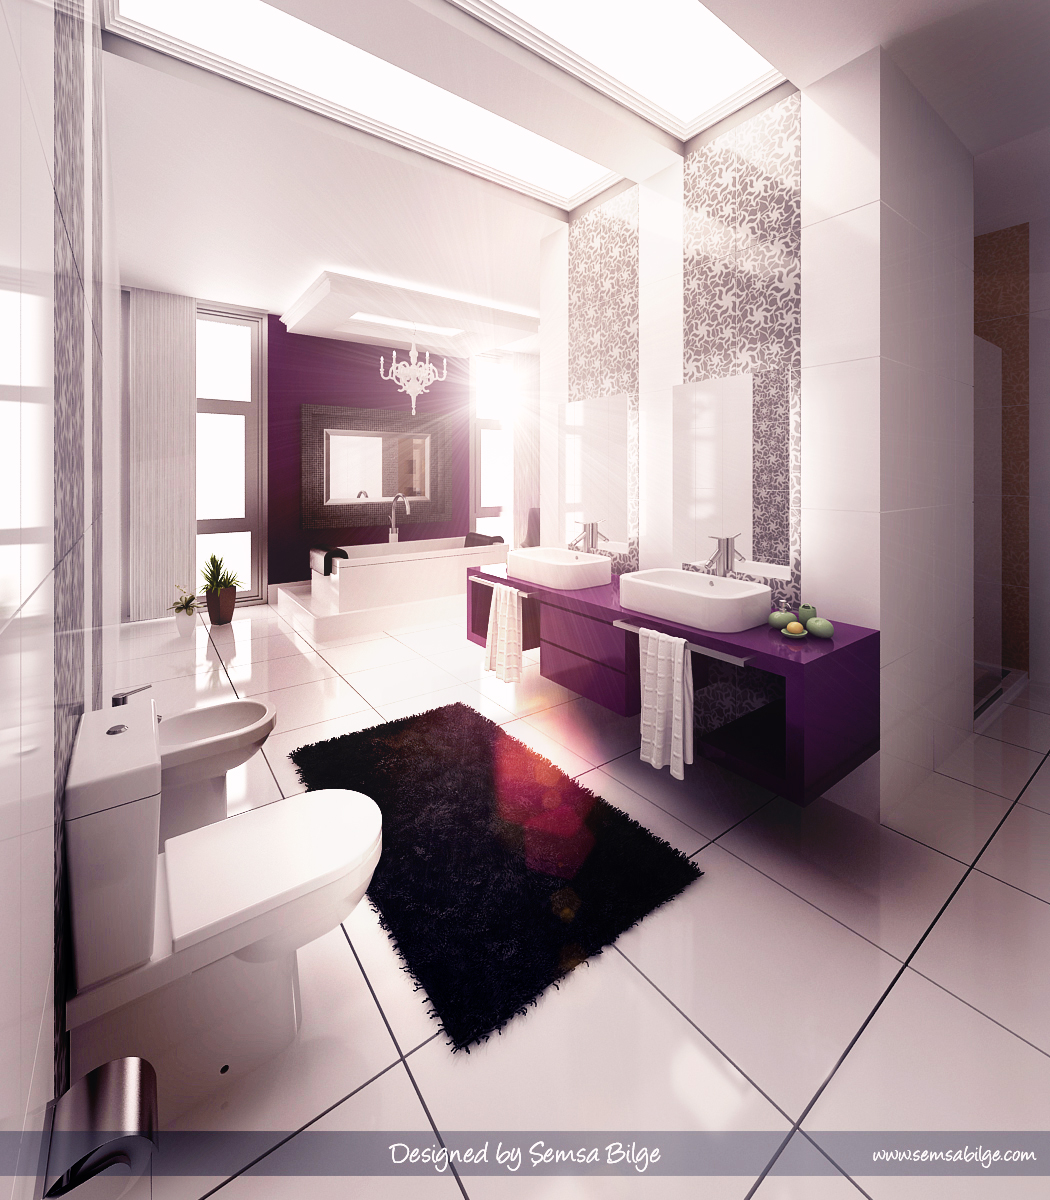 inspiring bathroom designs for the soul. Black Bedroom Furniture Sets. Home Design Ideas